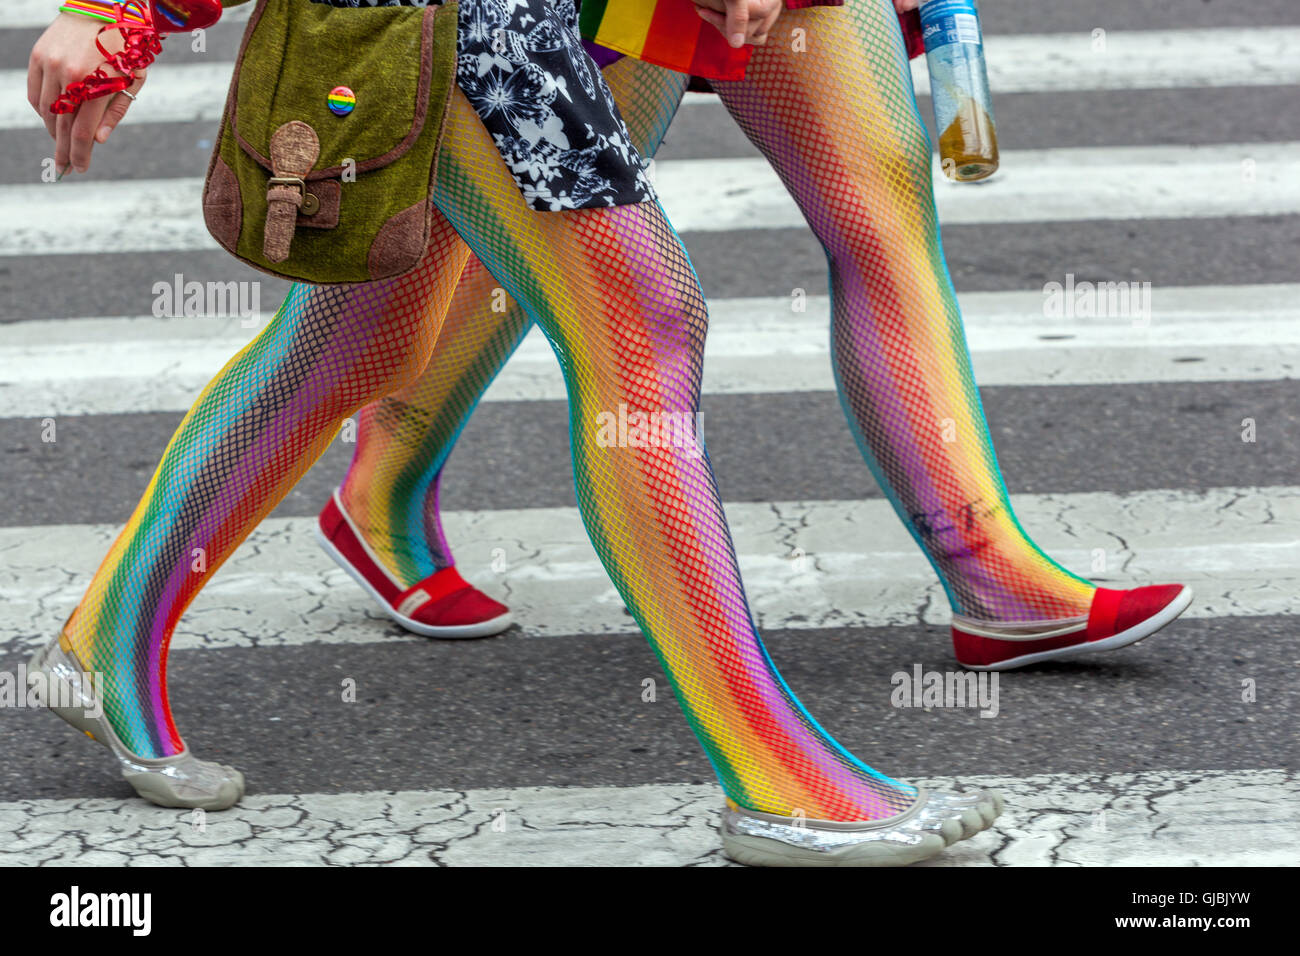 Couple on crosswalk, Prague Pride, Czech Republic - Stock Image